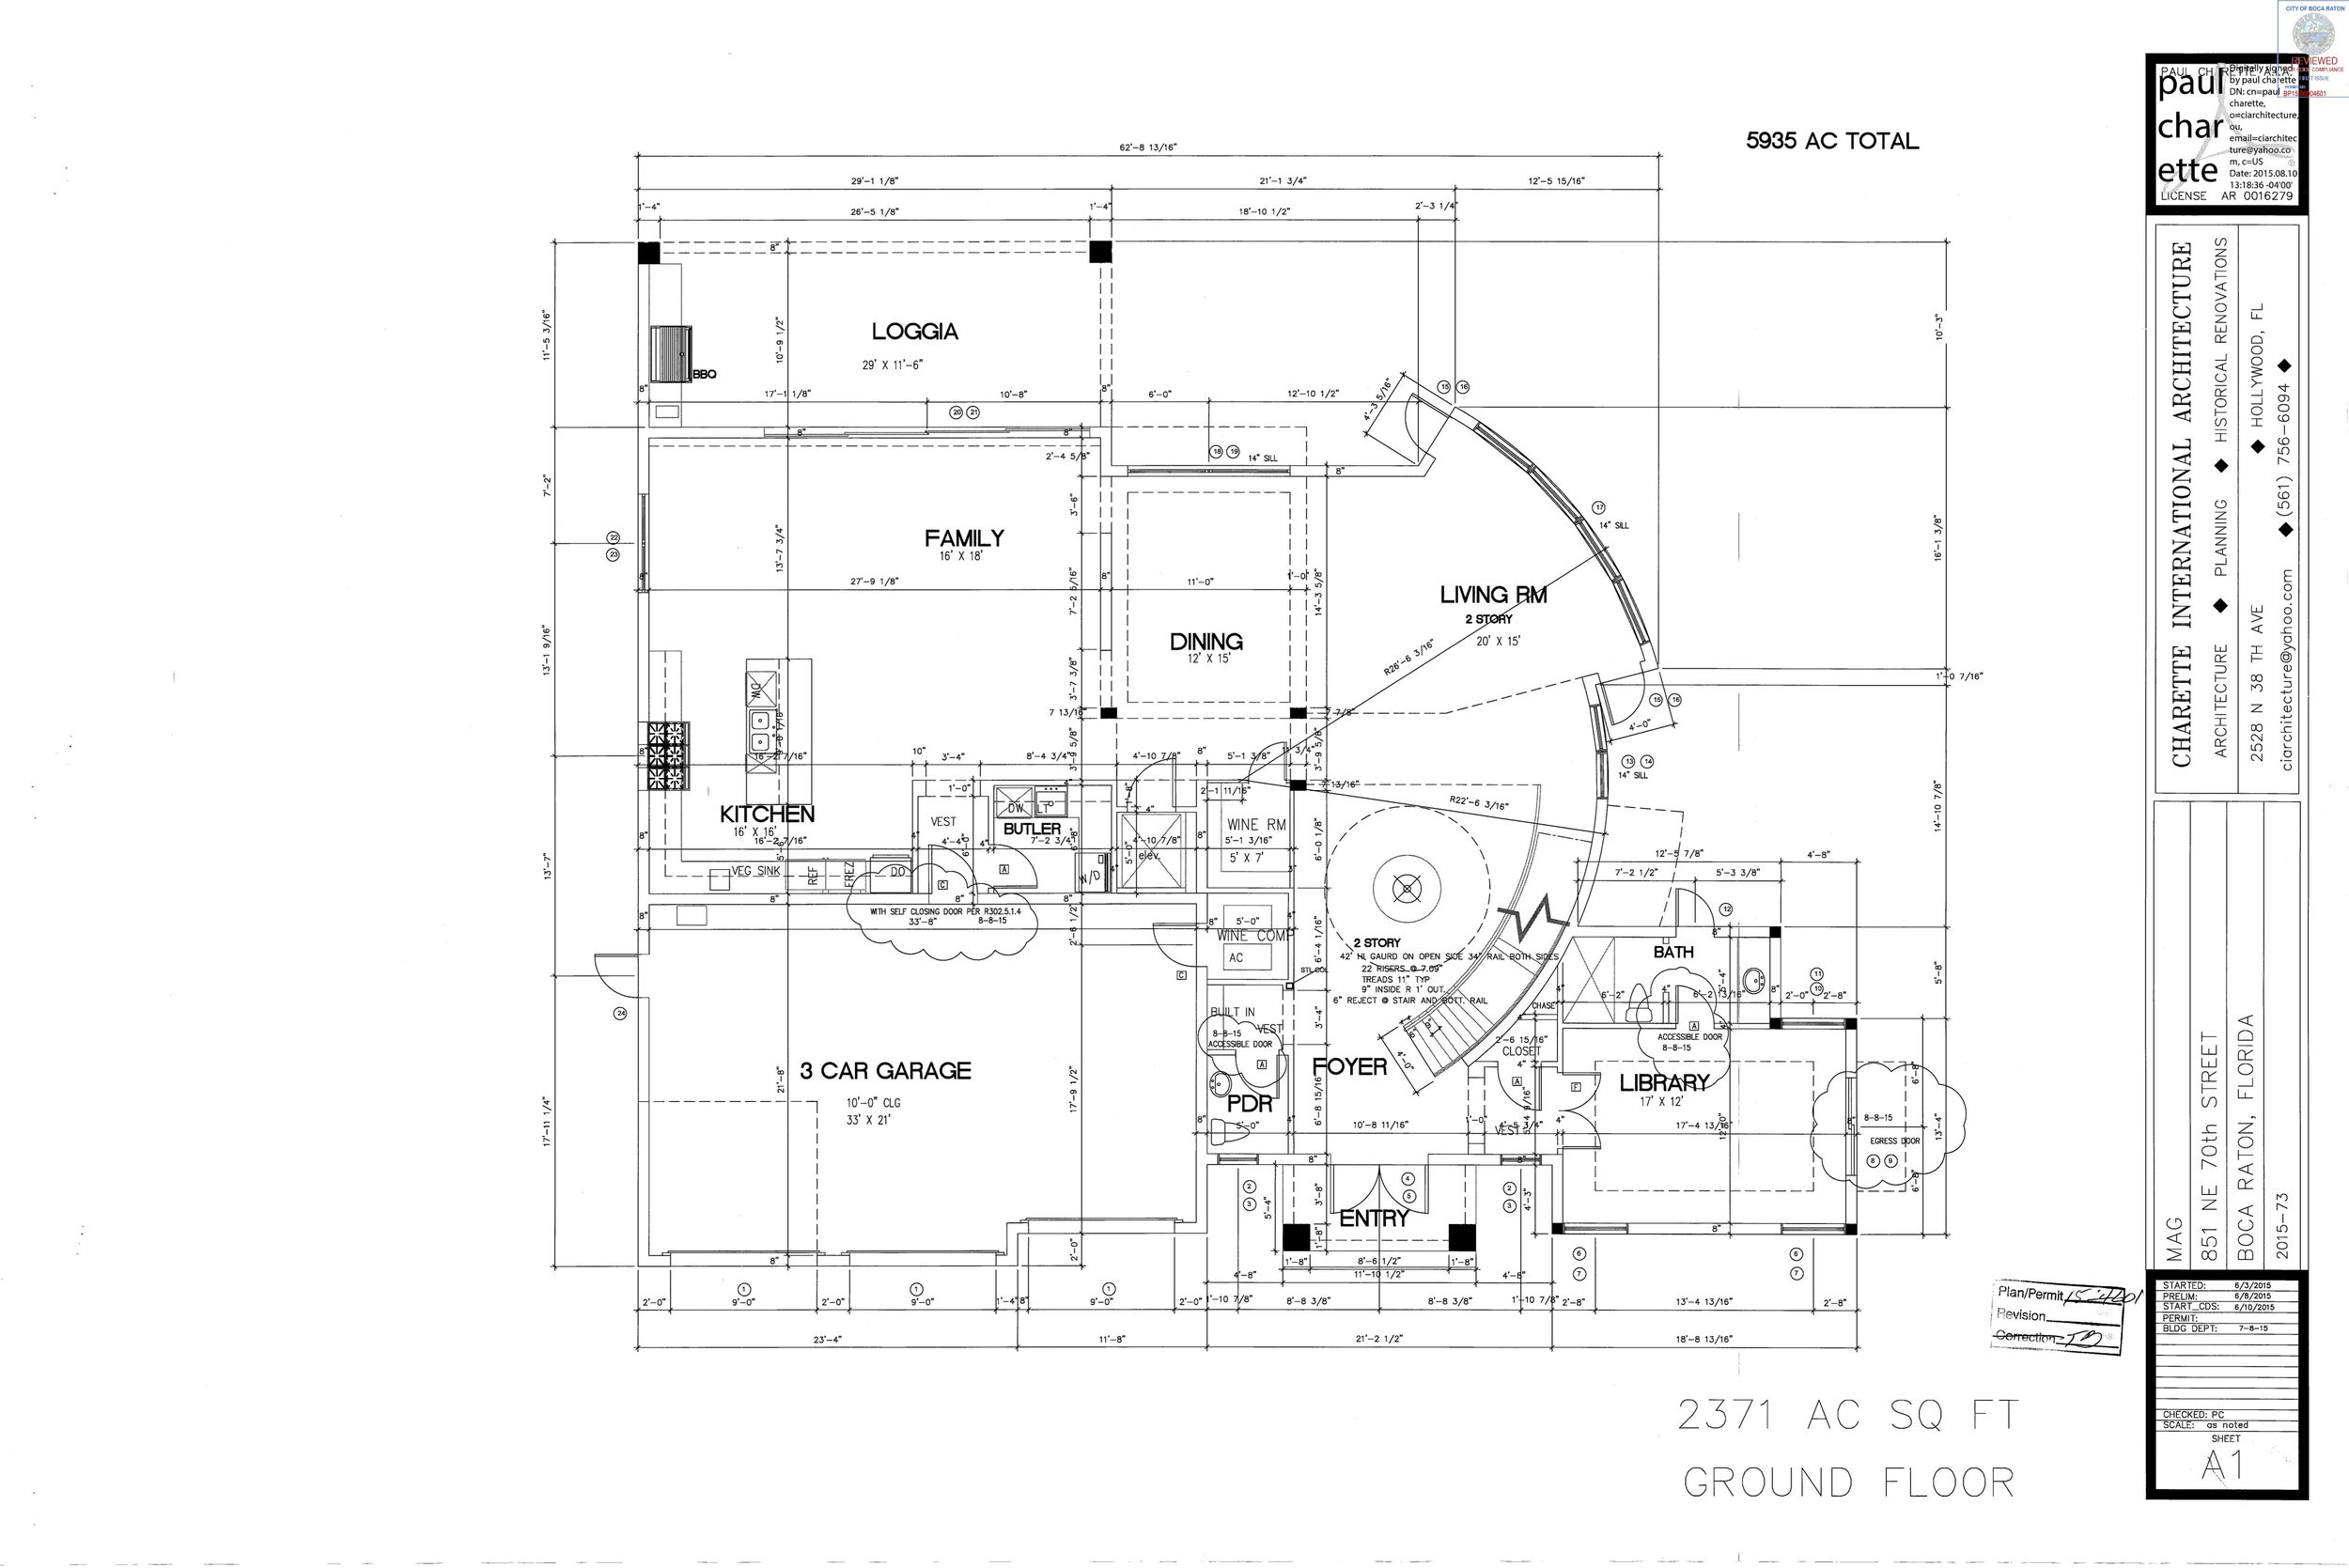 851 - Ground Floor Plans.jpg